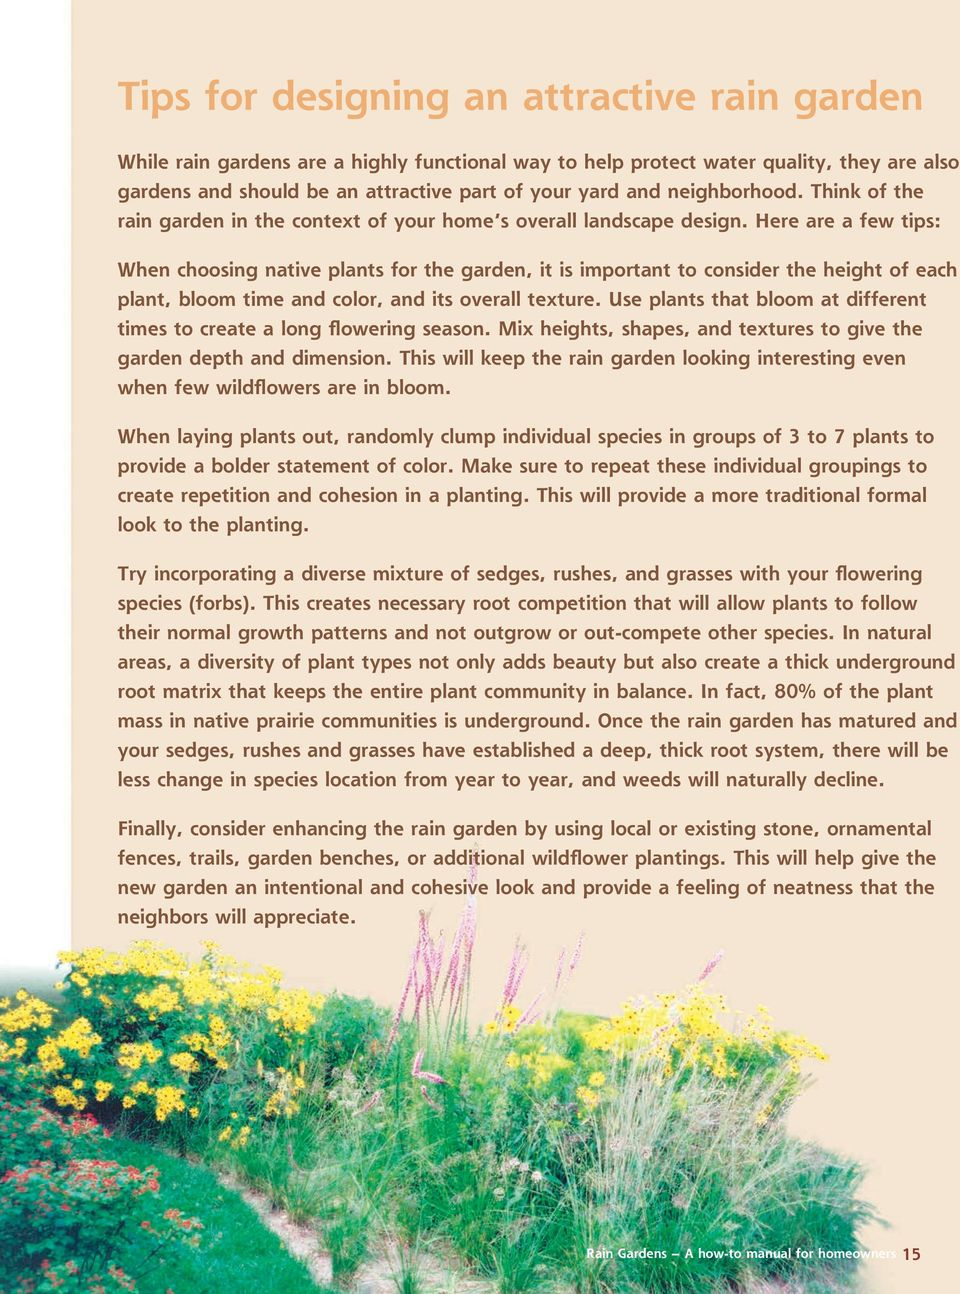 Anyone who has ever done any gardening will have no problem planting a rain garden, but a few basic reminders are listed below.